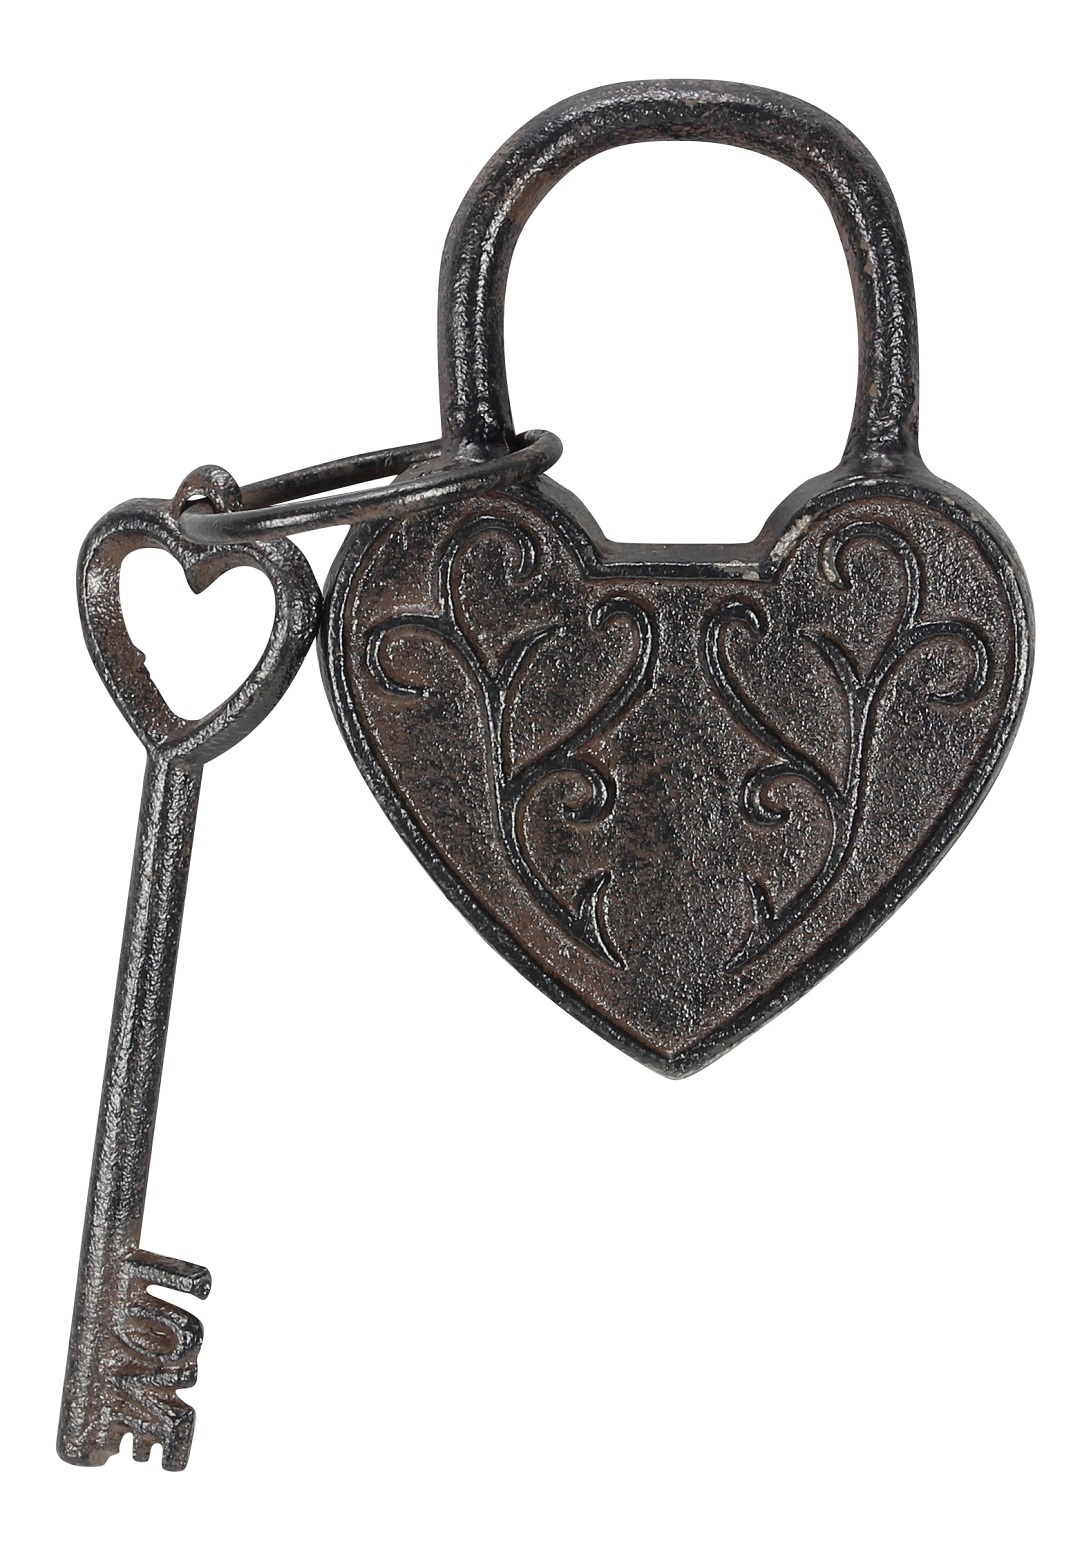 Heart shaped cast iron lock with love key tabletop decor